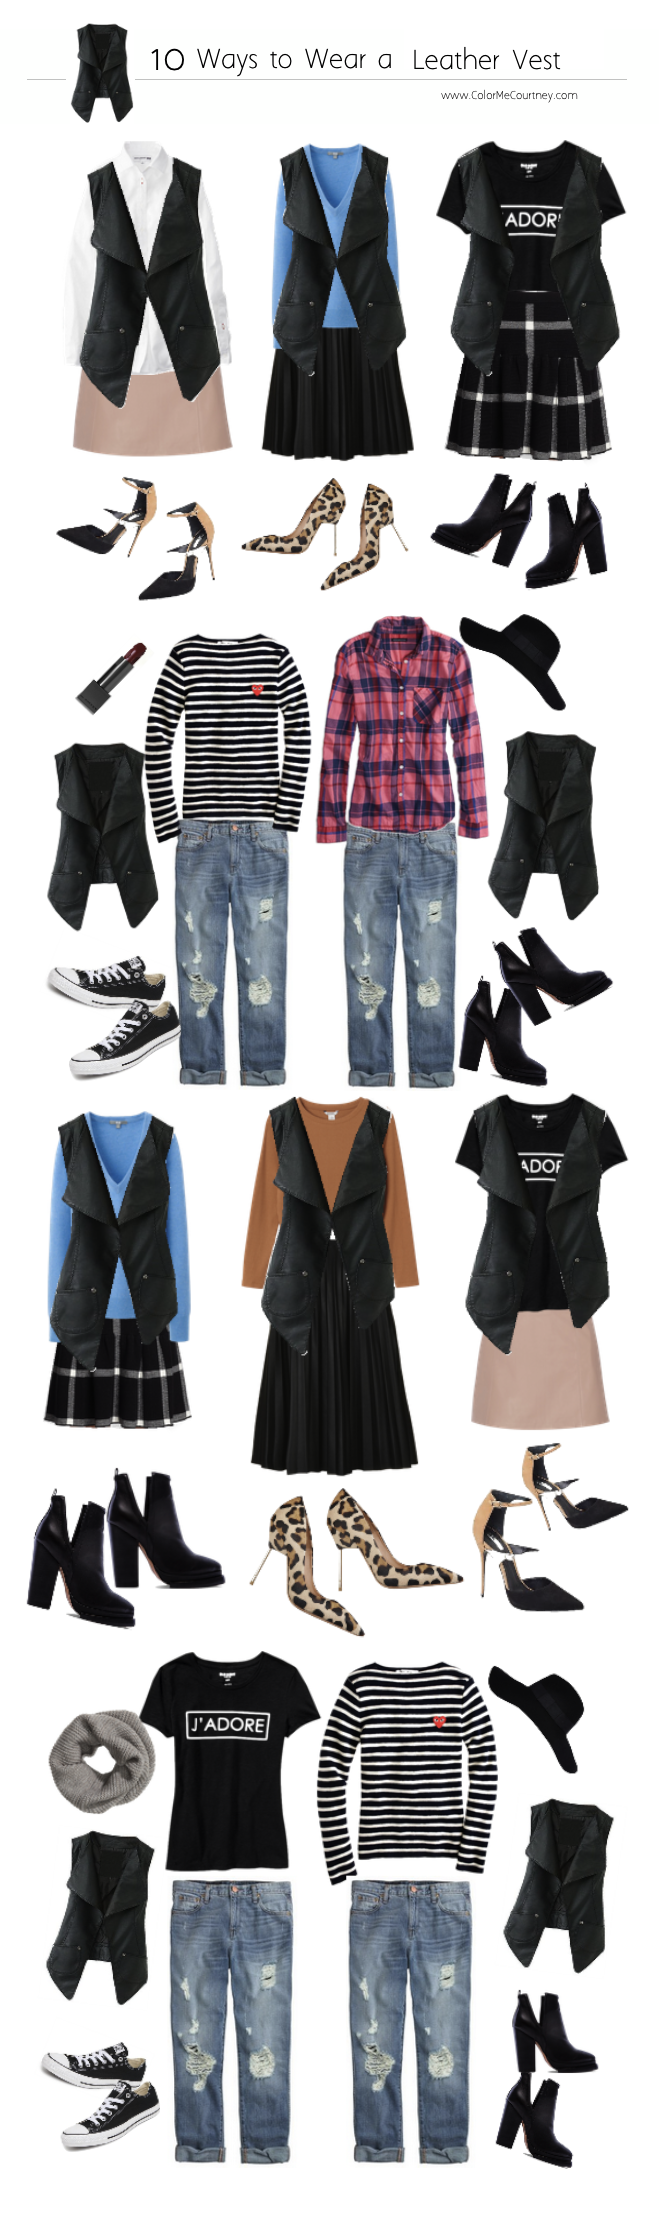 100 outfits create 100 outfits from 10 pieces 10 pieces 100 outfits what to wear for fall fall style guide fall shopping guide what to buy fro fall fall fashion fall fashion guide how to dress for fall what to wear for fall fall fashion guide how to wear a vest 10 ways to wear a vest ten ways to wear